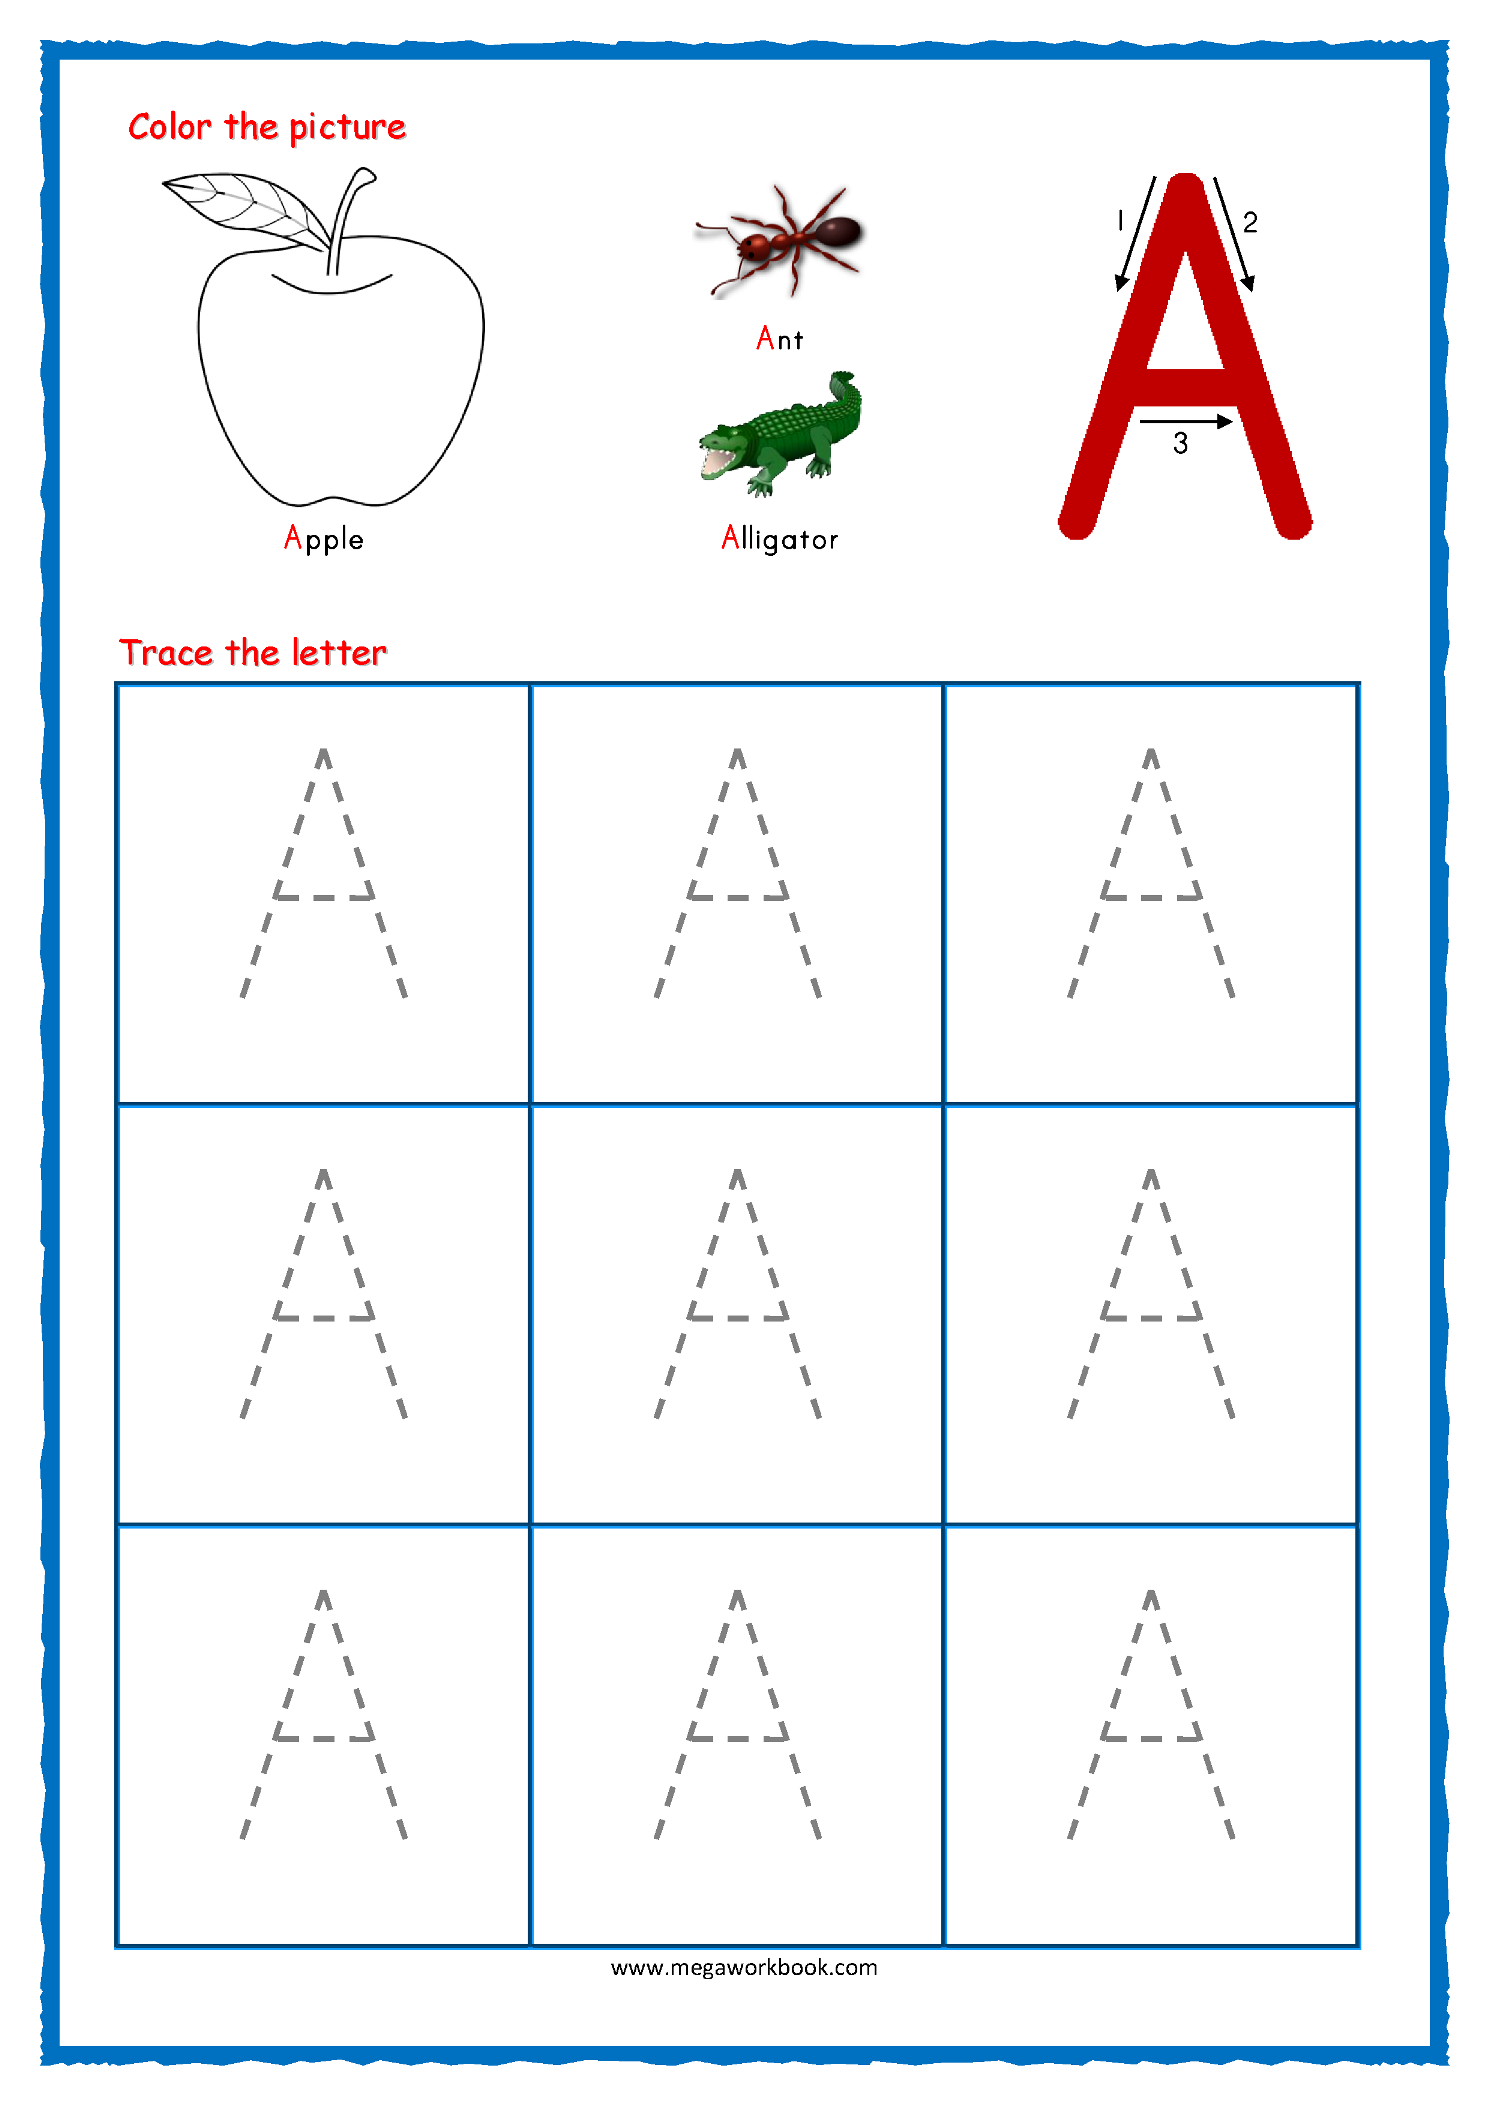 Tracing Big Letters Worksheets | Printable Worksheets And